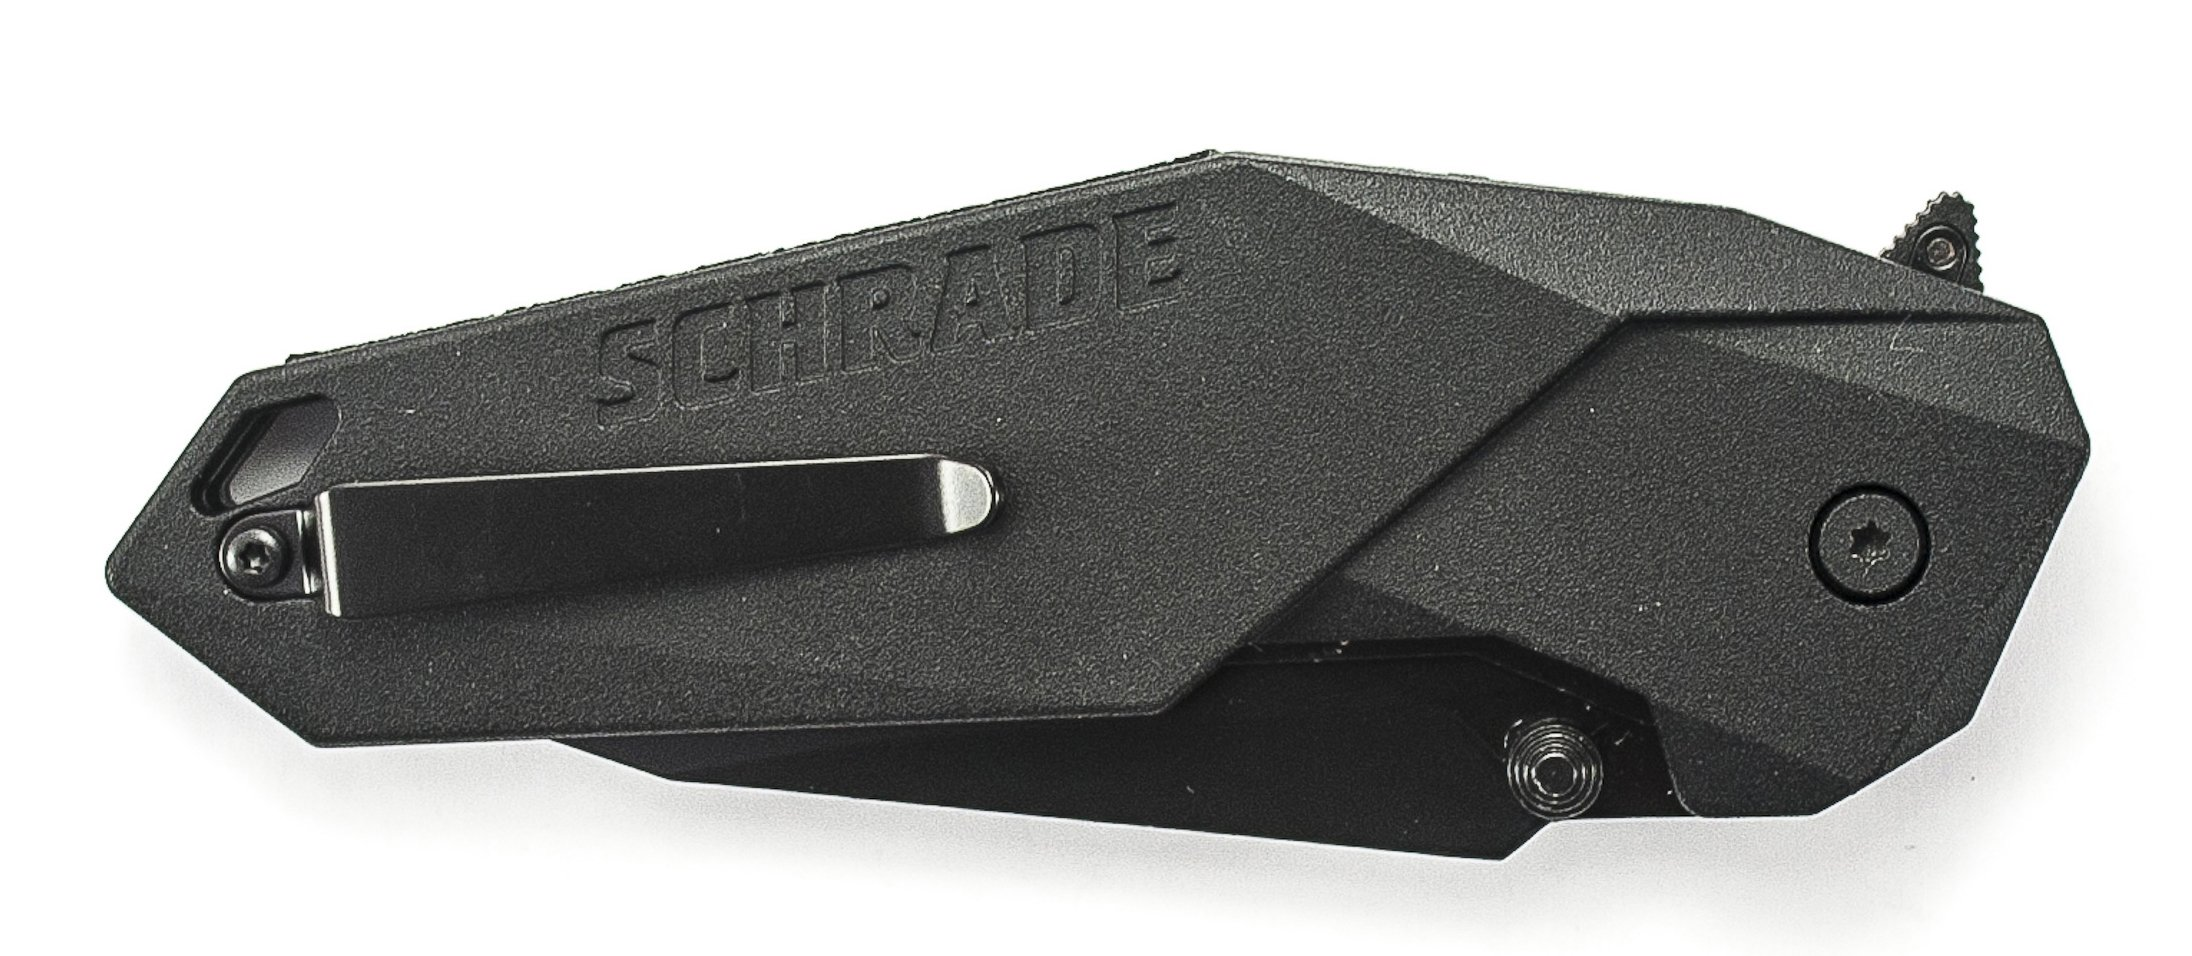 Schrade SCHA5B M.A.G.I.C. Assisted Opening Liner Lock Folding Knife Clip Point Blade Aluminum Handle